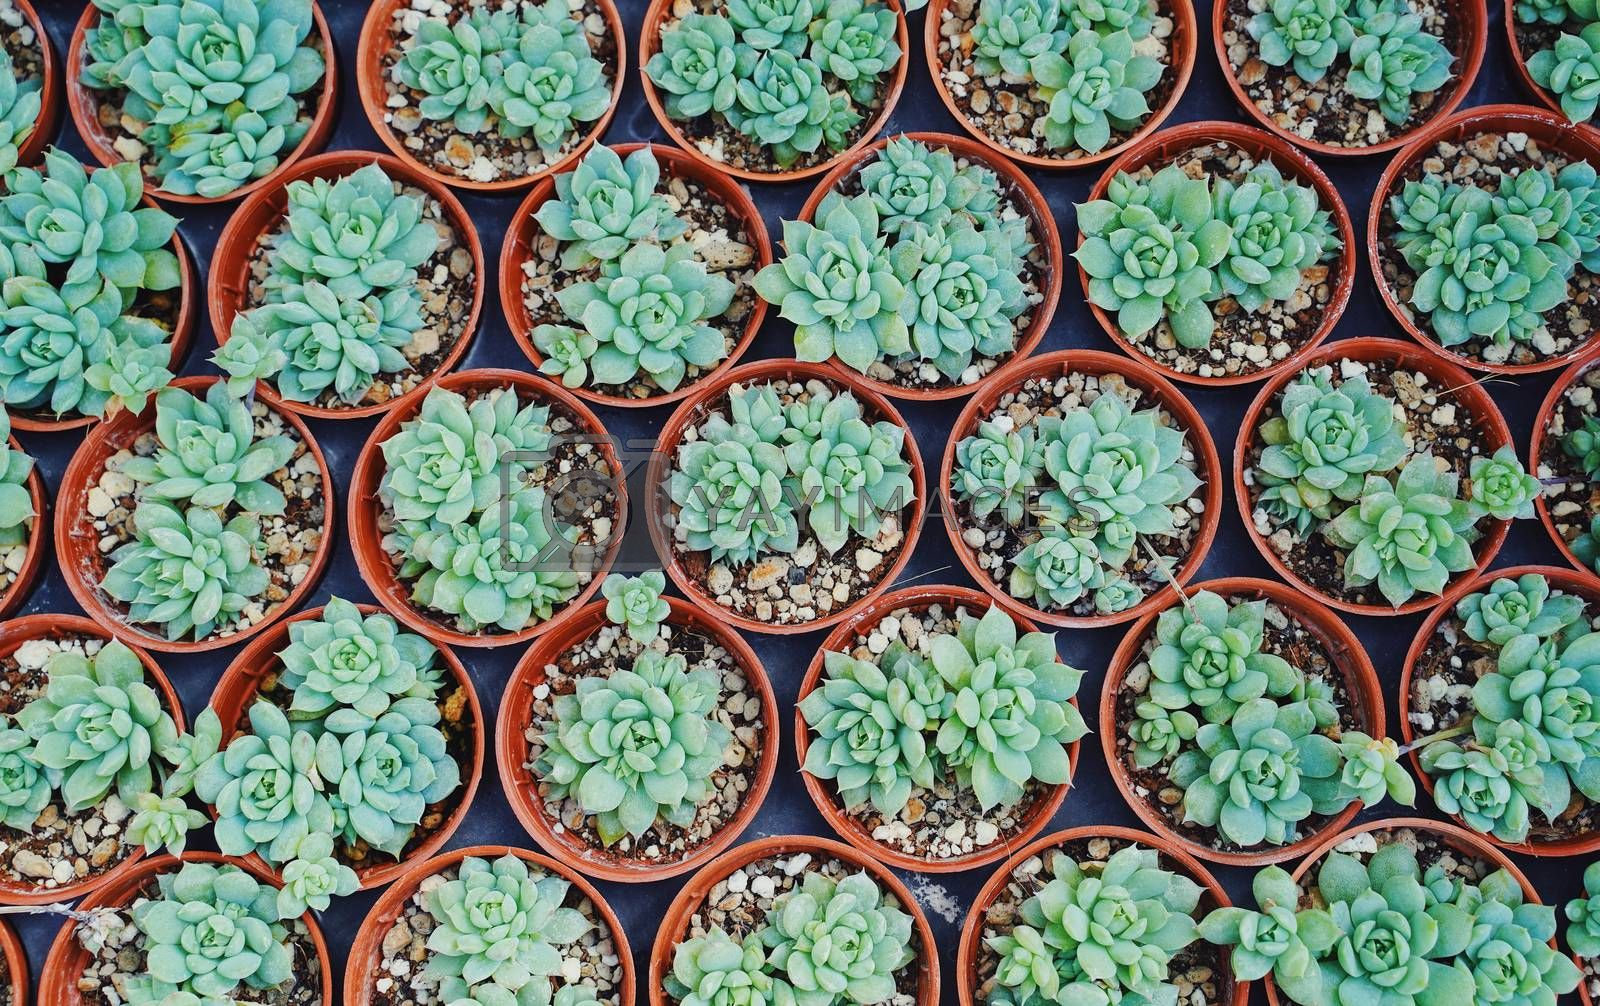 Top view of small cactus plant preparing for sale in the market